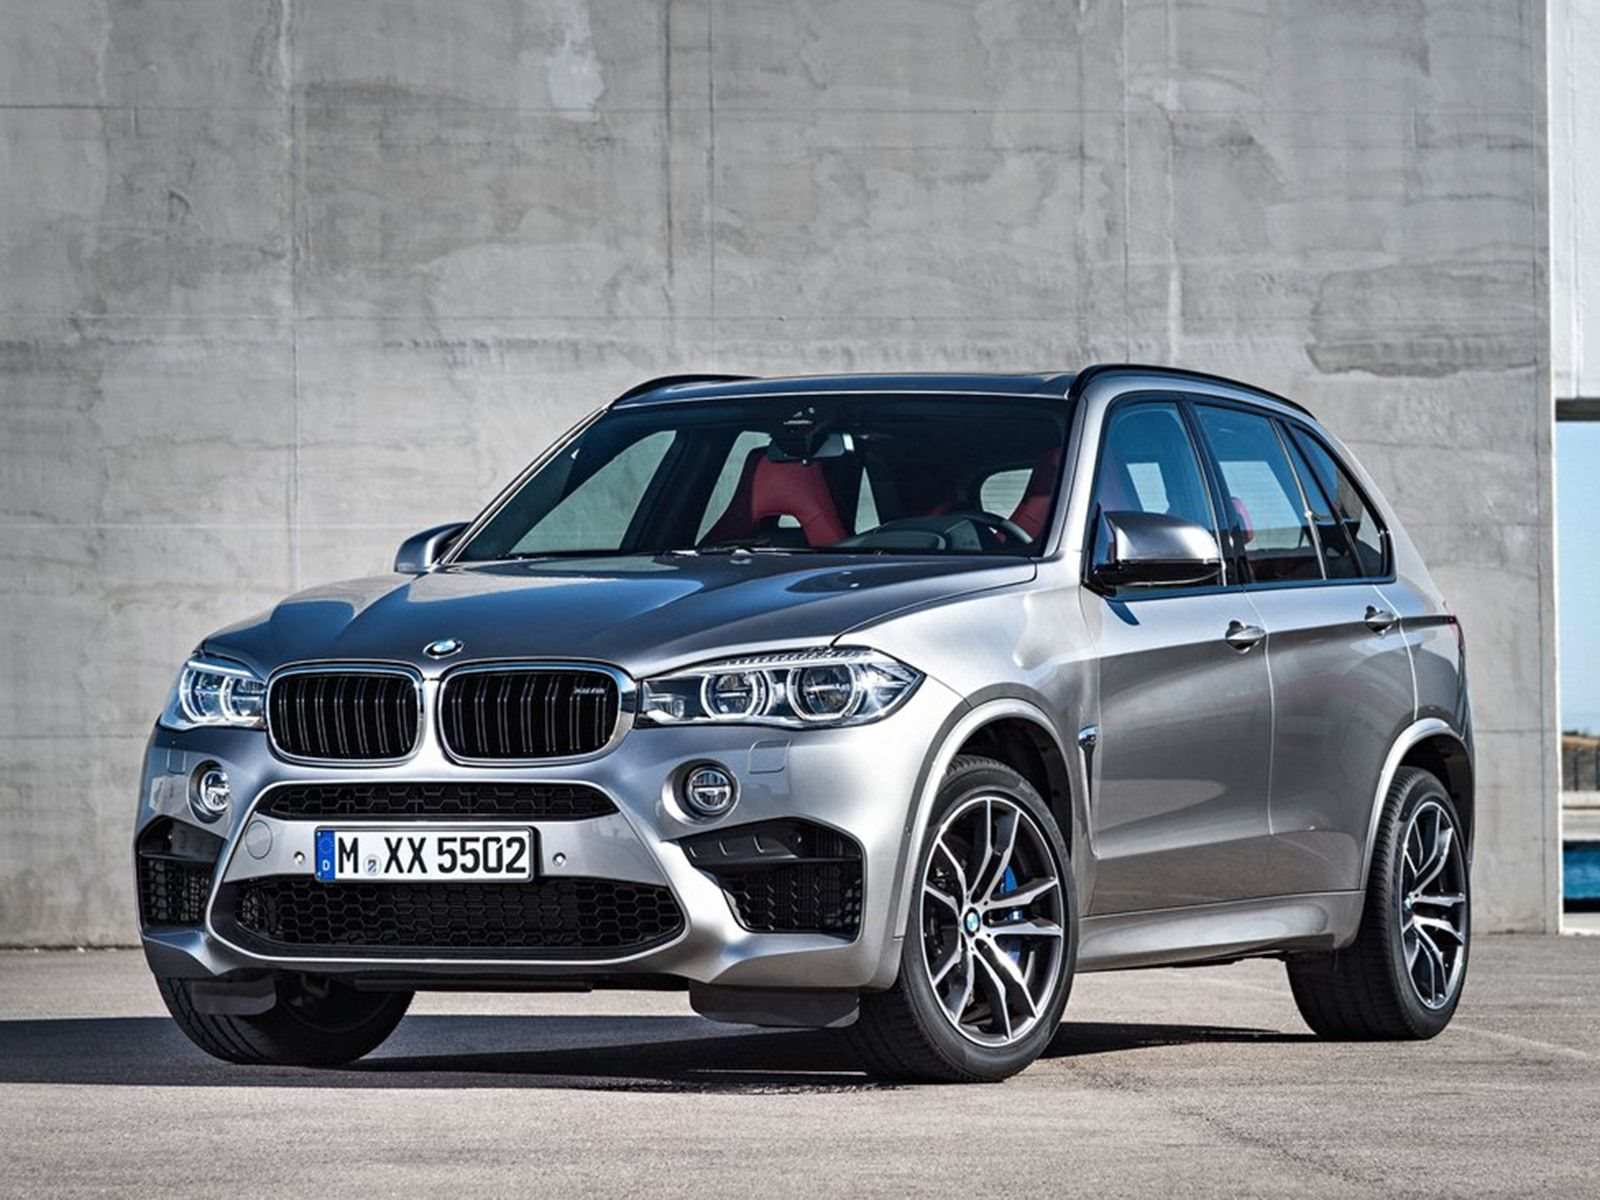 43 Best Review 2020 Bmw X5M Research New with 2020 Bmw X5M